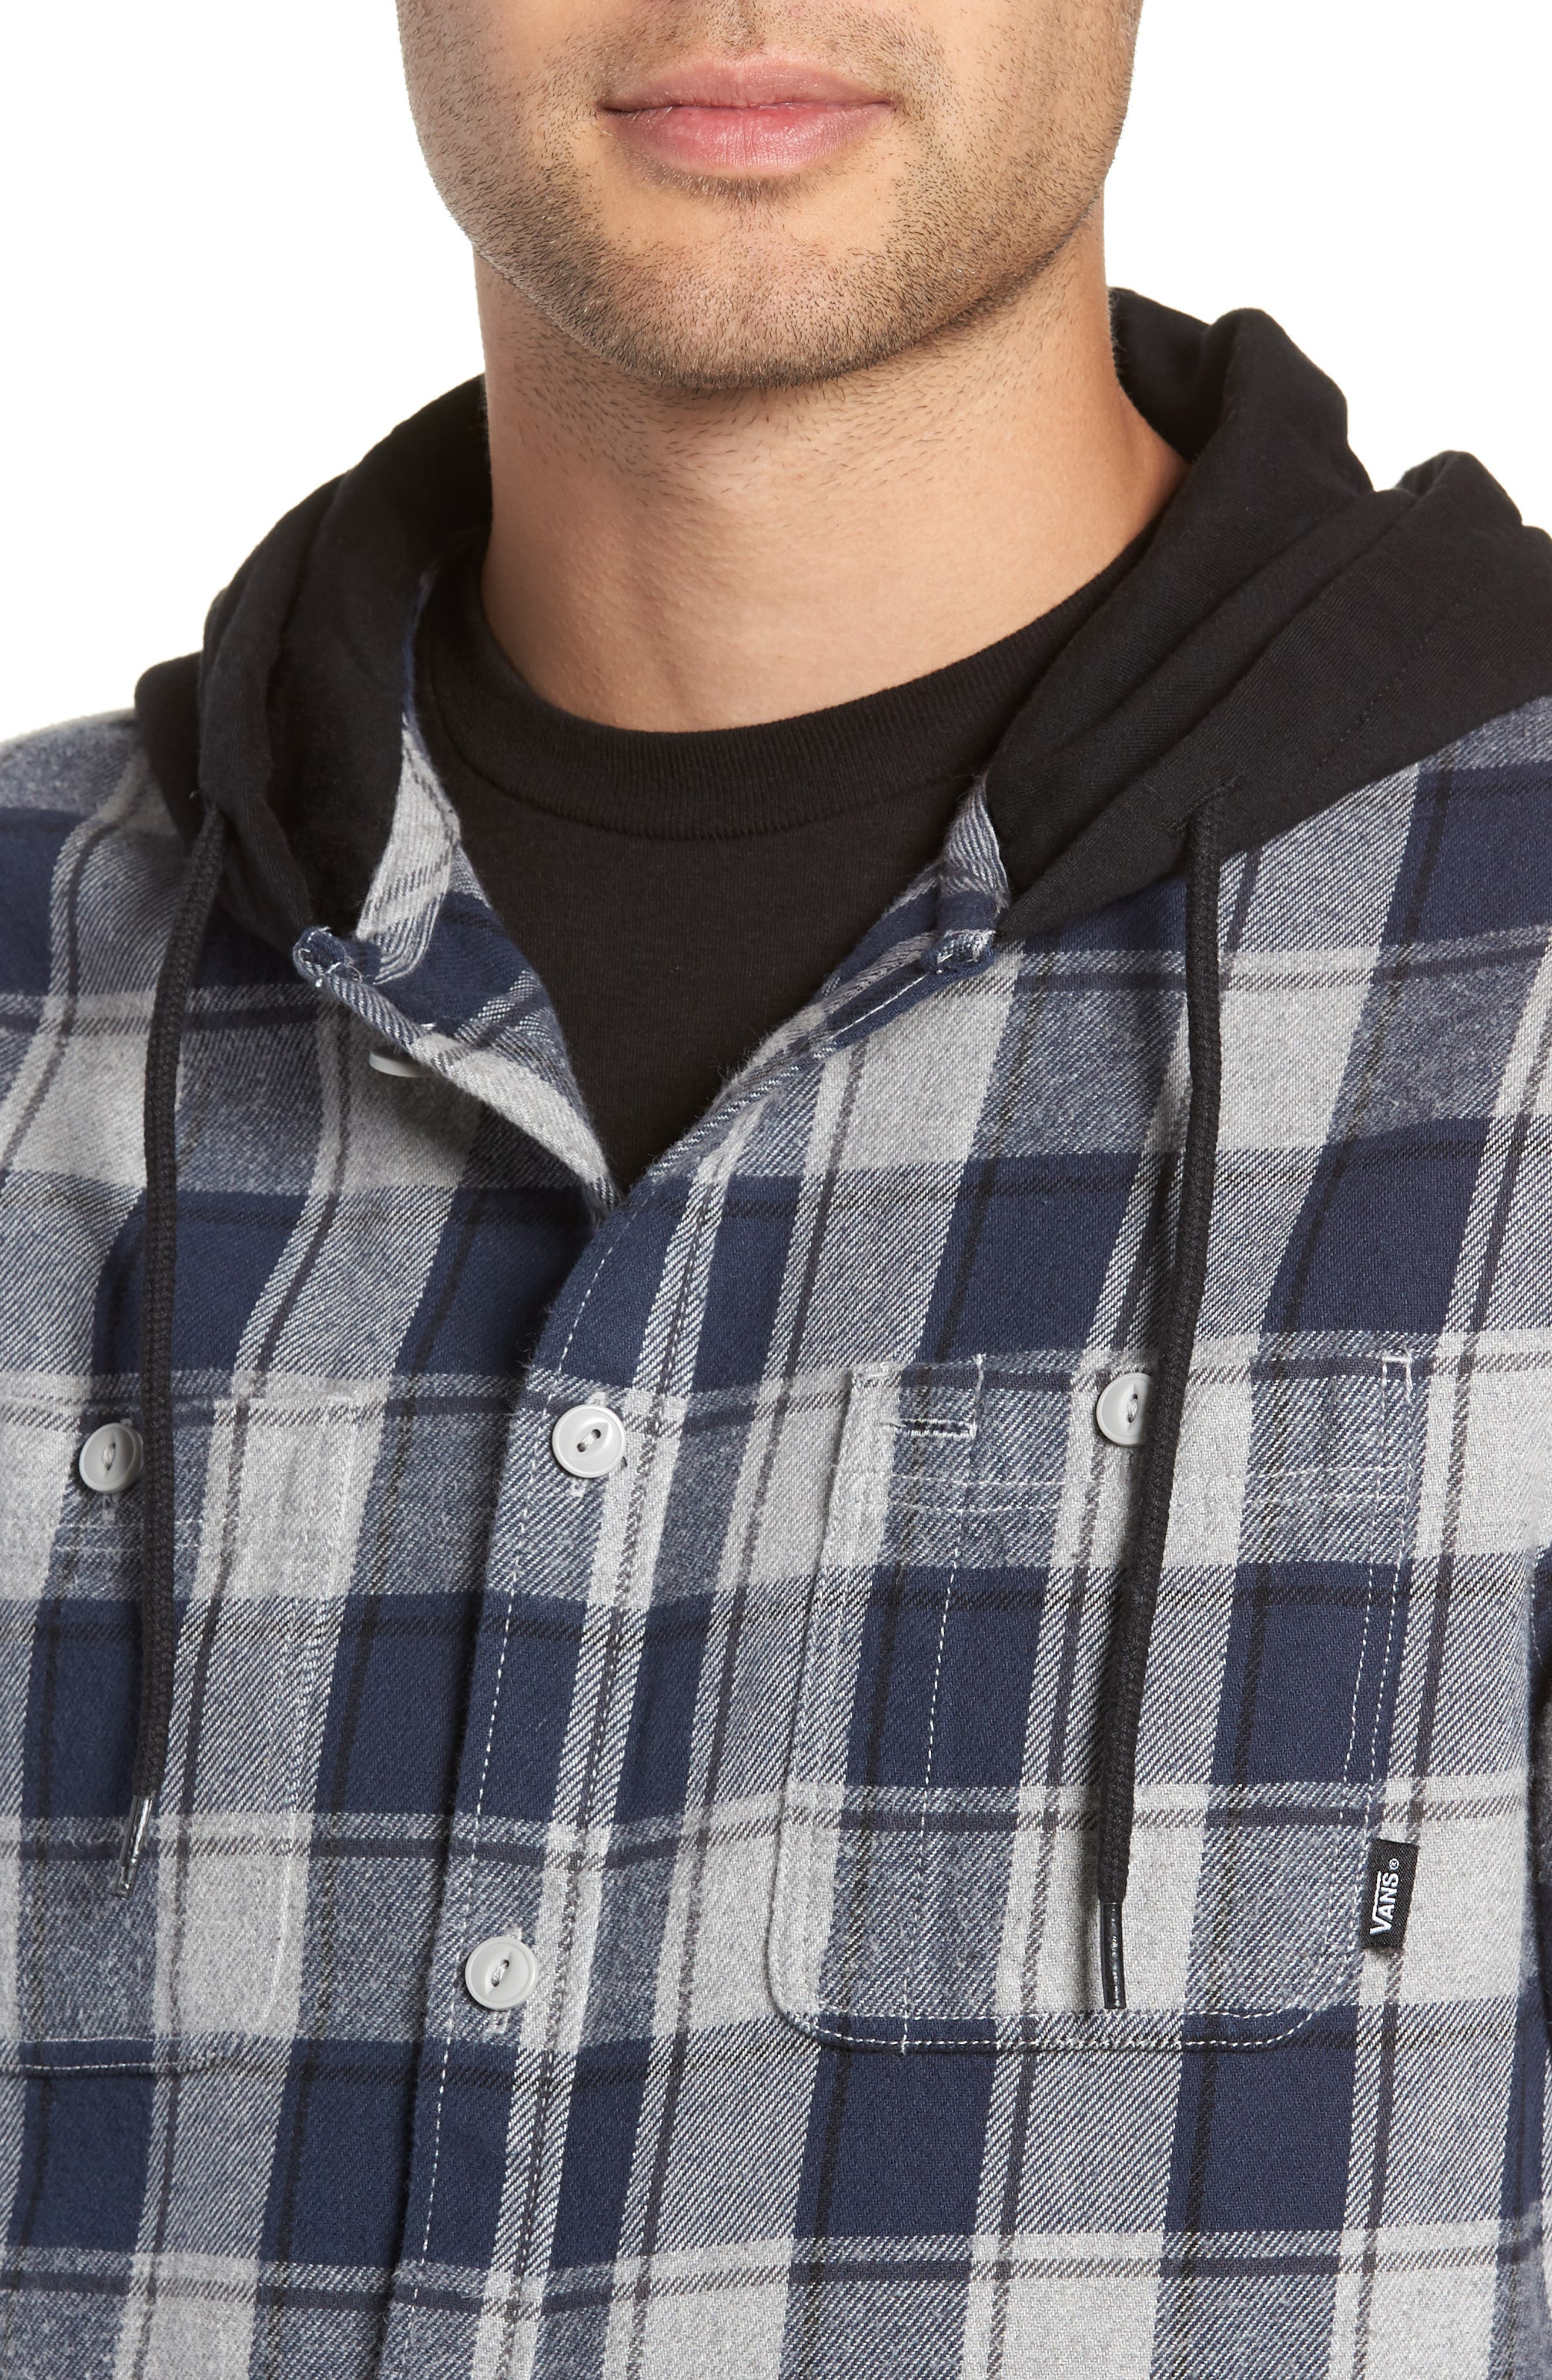 Lopes Hooded Plaid Flannel Jacket,                             Alternate thumbnail 4, color,                             DRESS BLUES/ GREY HEATHER